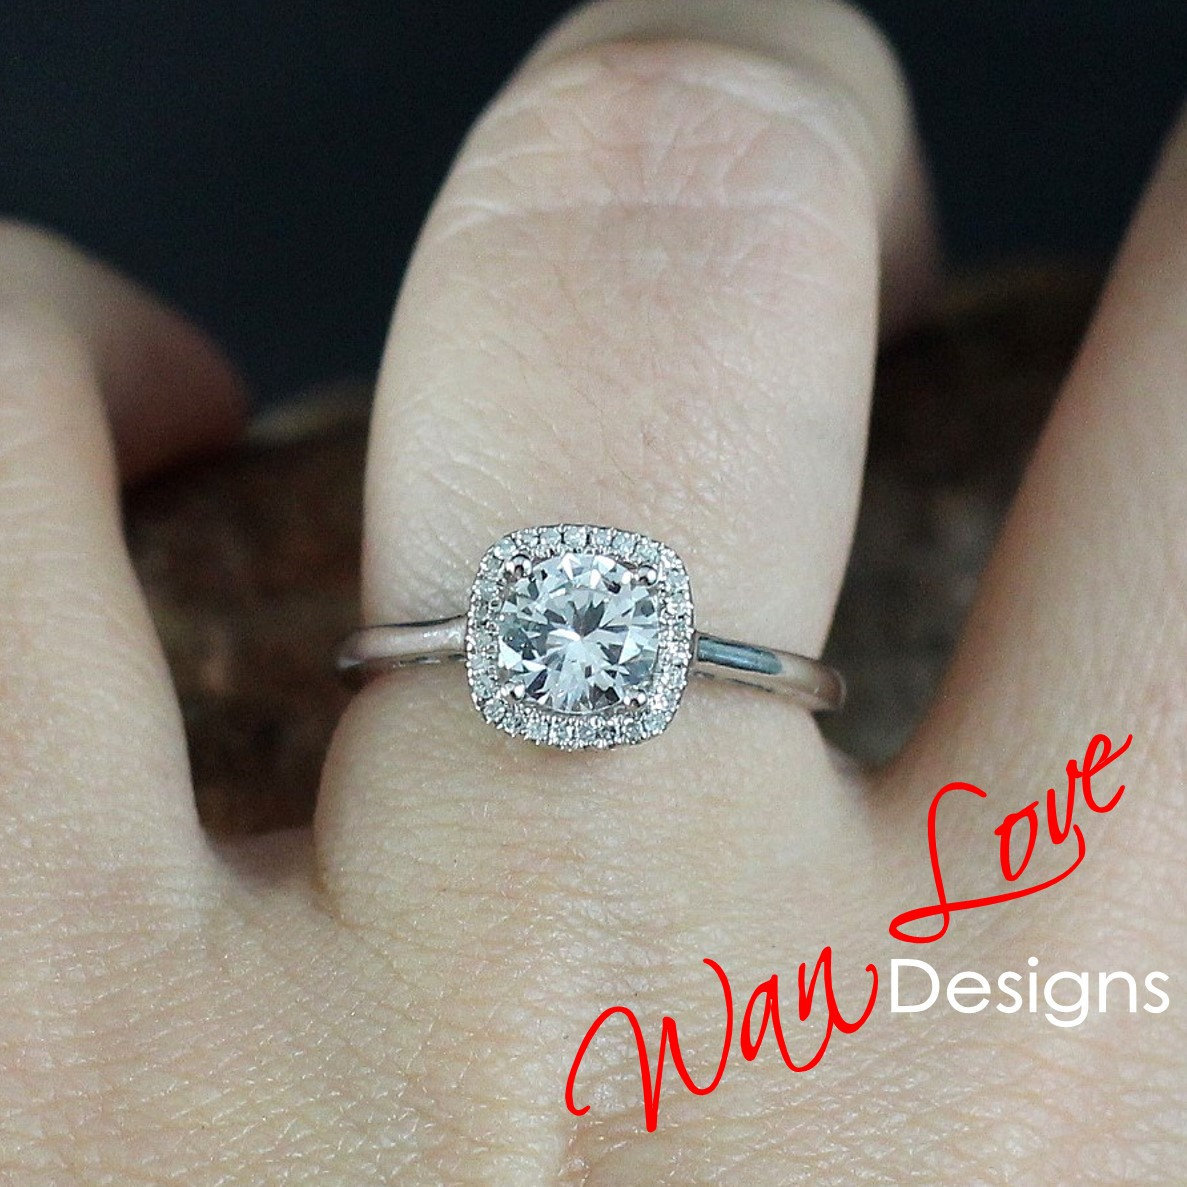 Forever One Moissanite & Diamond Halo Engagement Ring, Cushion, Round,1ct,6mm,Plain Shank band,14k 18k White Yellow Rose Gold-Custom-Wedding http://tuppu.net/395bc6f4  #Etsy #WanLoveDesigns #Weddingrings #Anniversarygift #RoundCutMoissanitepic.twitter.com/EW3aAYICYF